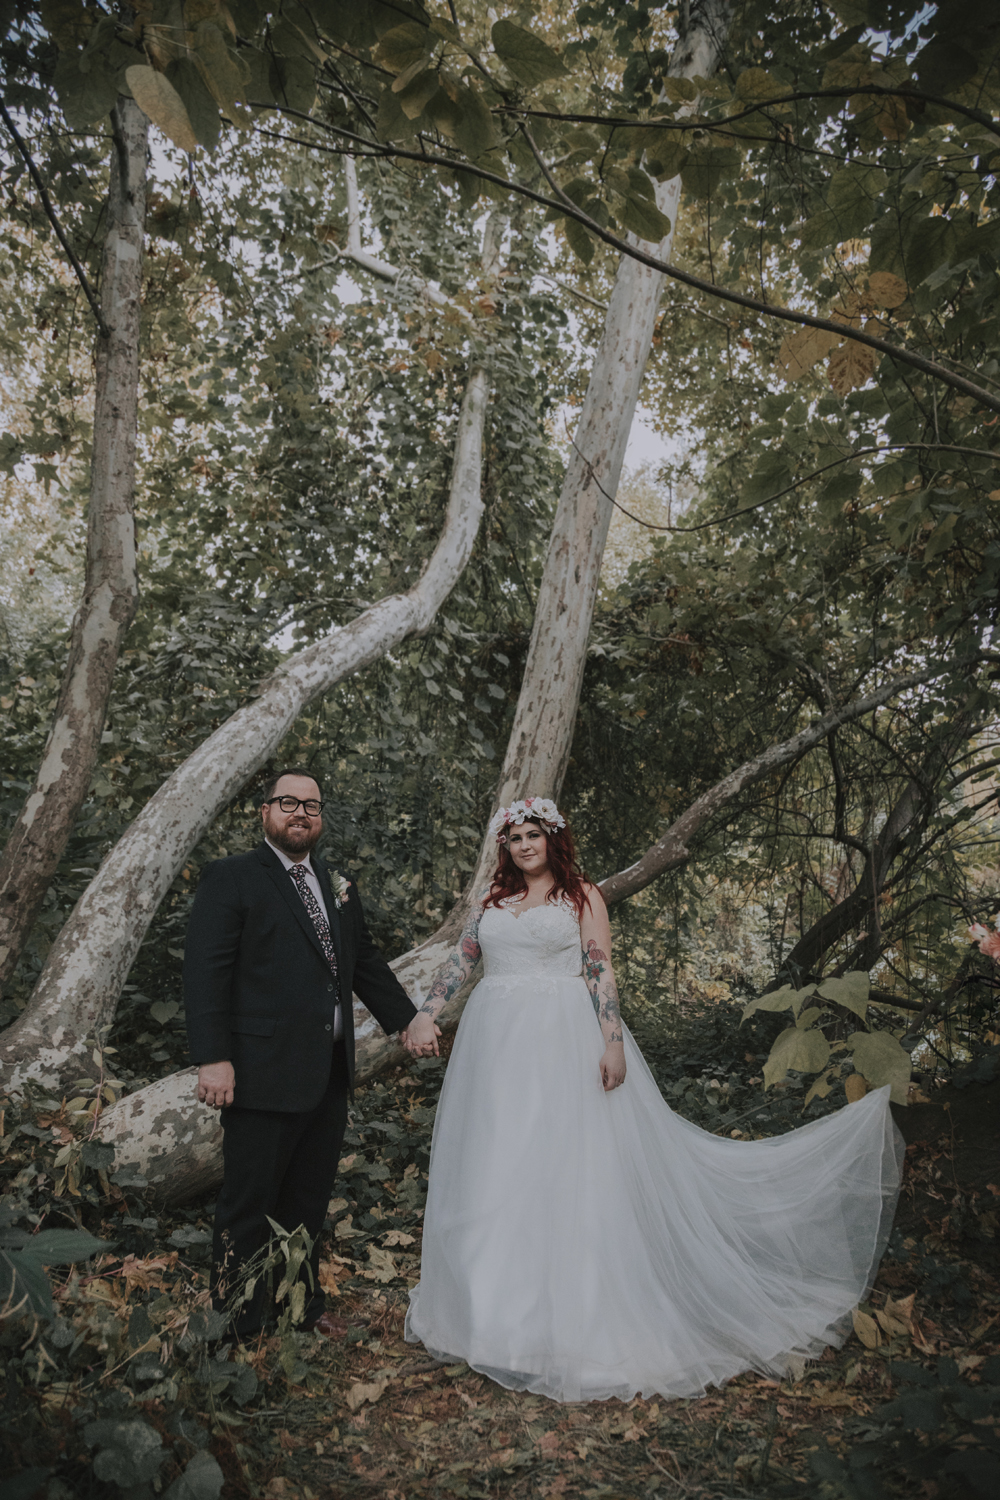 1Wedding-photographer-at-Creekside-Rose-Garden-Chico-CA3.jpg